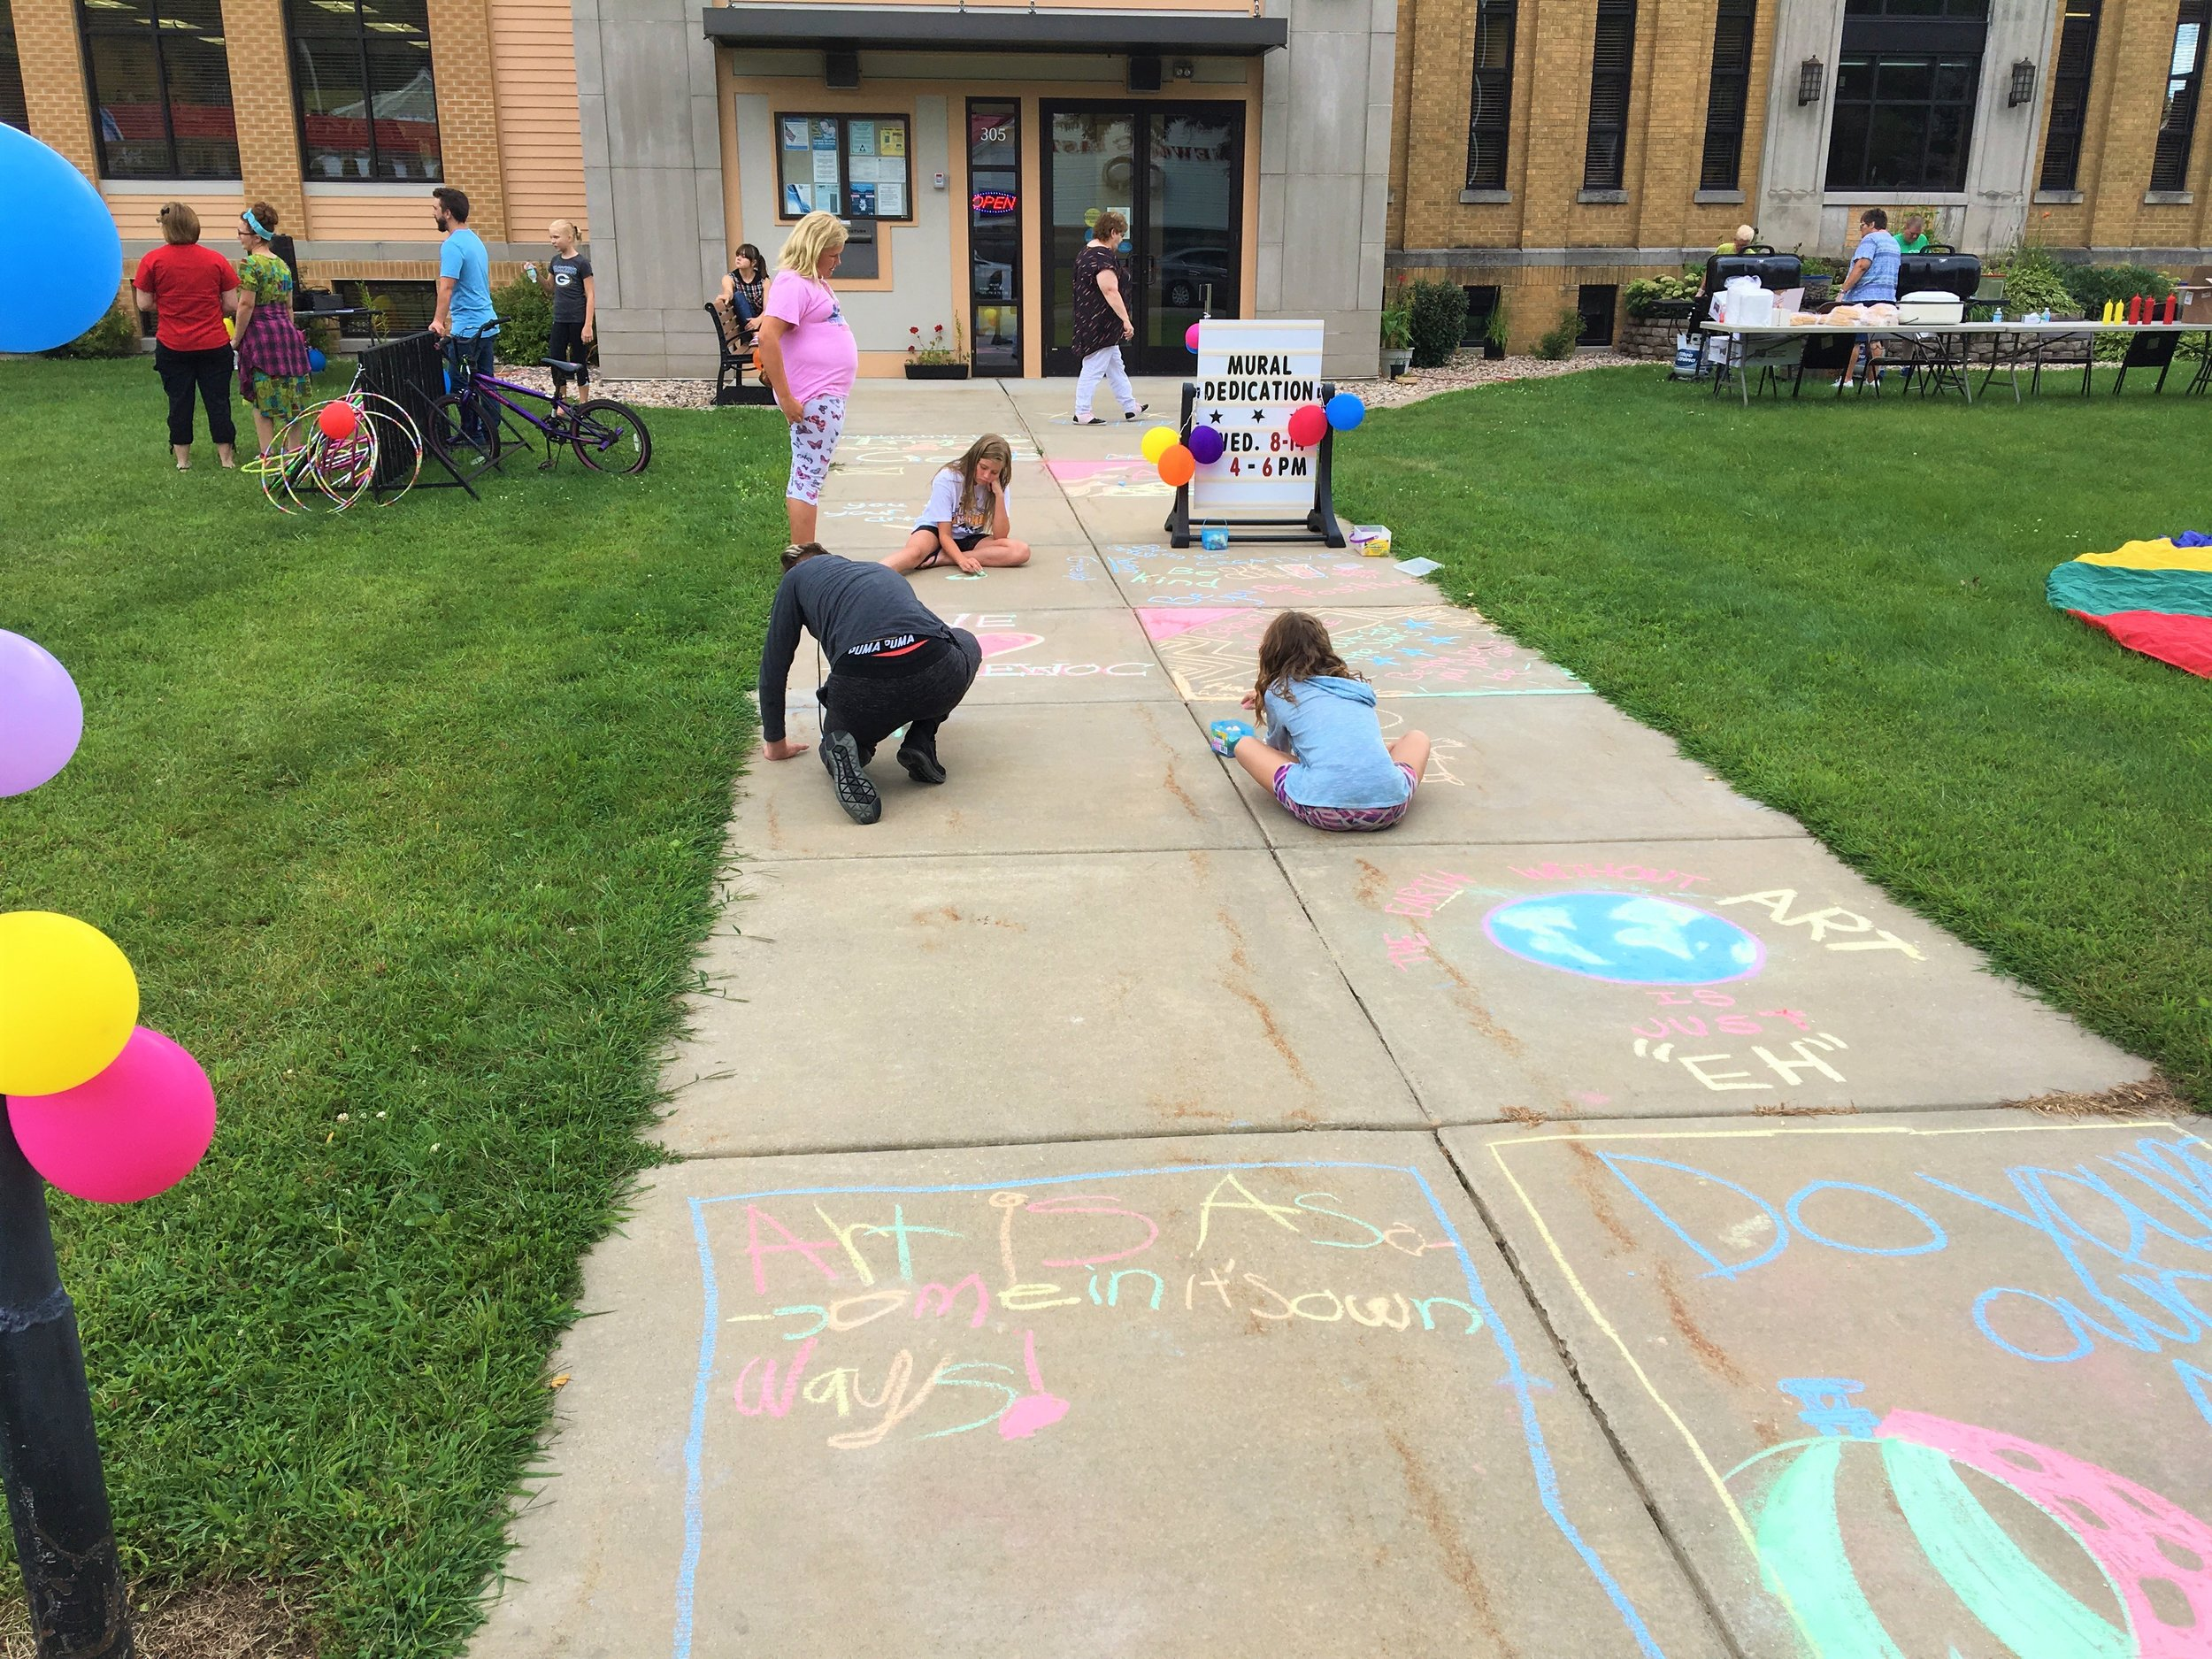 Children create sidewalk art at mural dedication